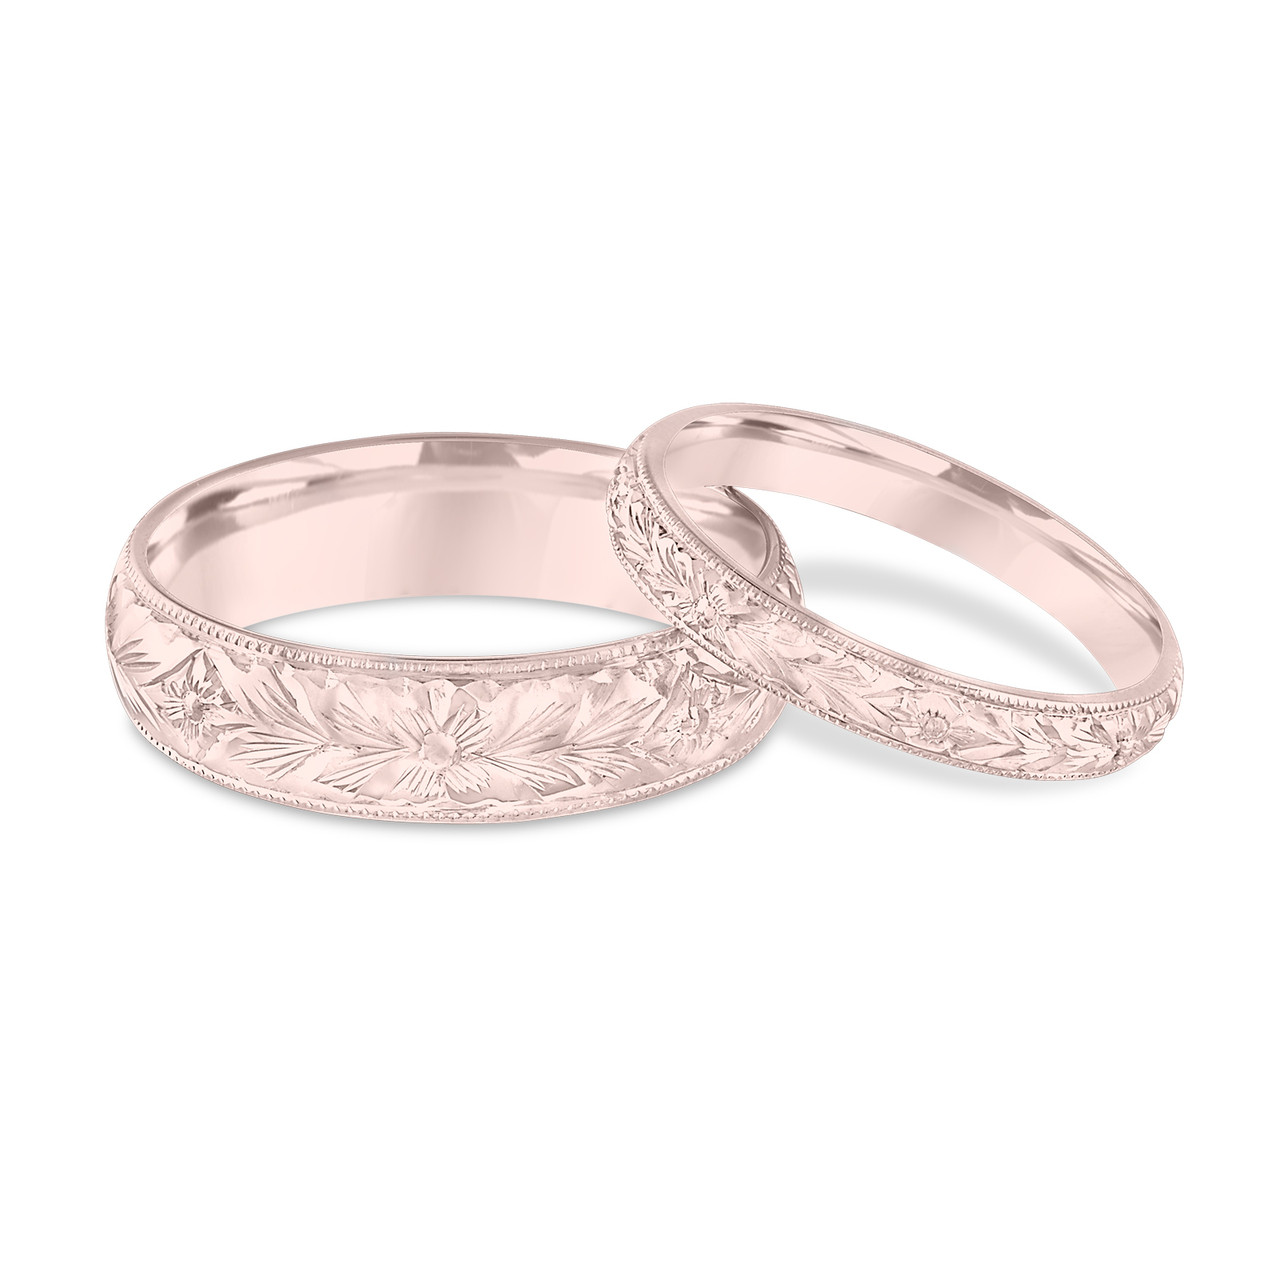 Rose Gold Wedding Ring.His Hers Wedding Bands Hand Engraved Wedding Bands Rose Gold Matching Rings Couple Wedding Bands Set Vintage Wedding Ring Unique